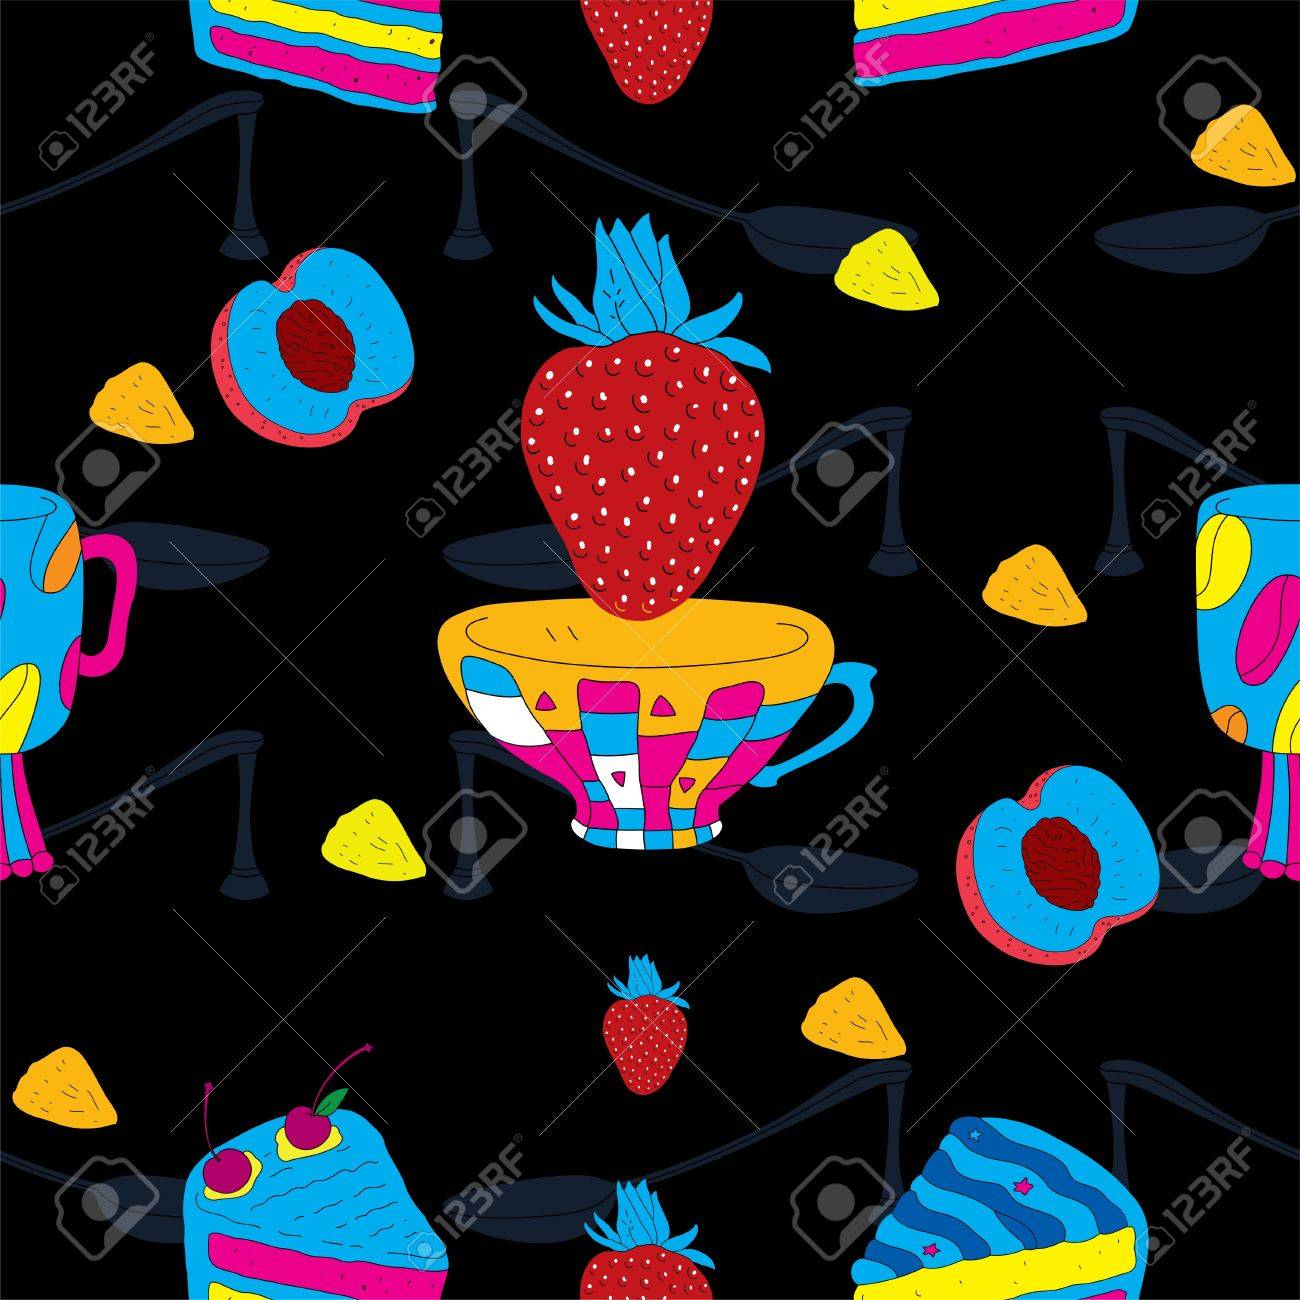 Cakes Futuristic Seamless Pattern with Coffee Cup, Strawberry and Peach Stock Vector - 15304042